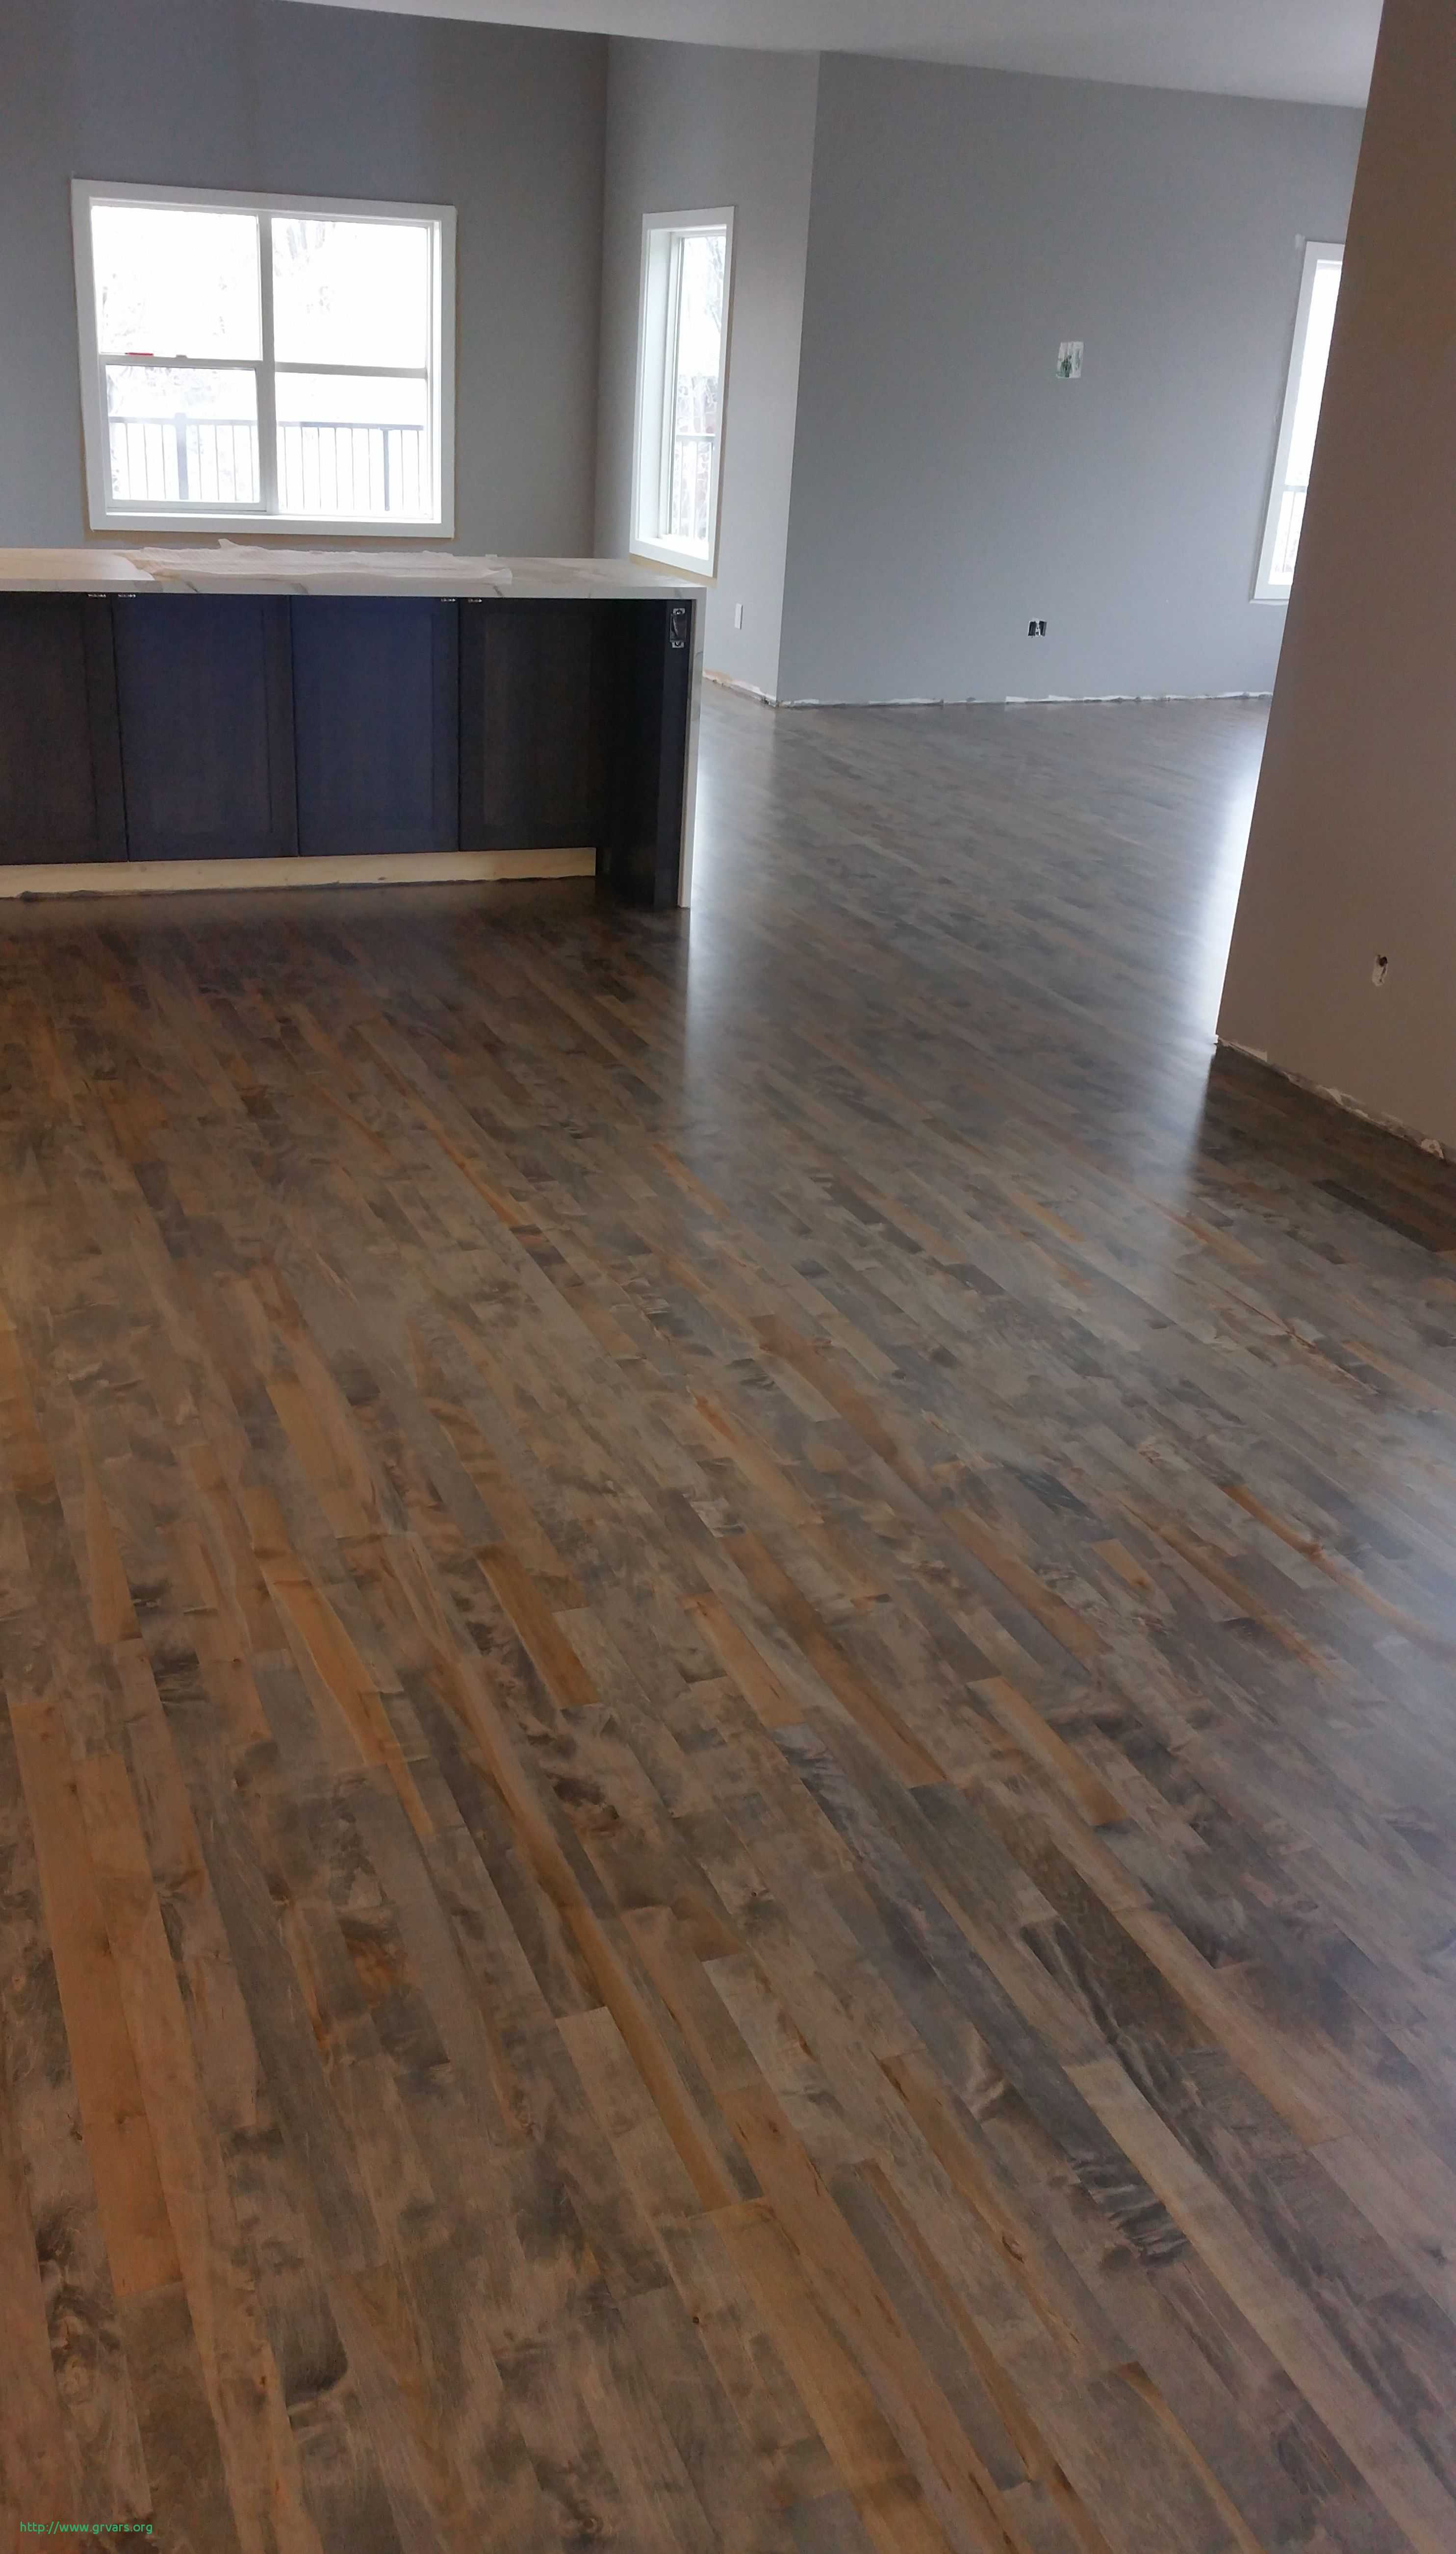 can you paint hardwood floors without sanding of darken wood floors without sanding frais painting hardwood floors with do it yourself darken wood floors without sanding beau 2 1 4 maple sand on site custom mixed